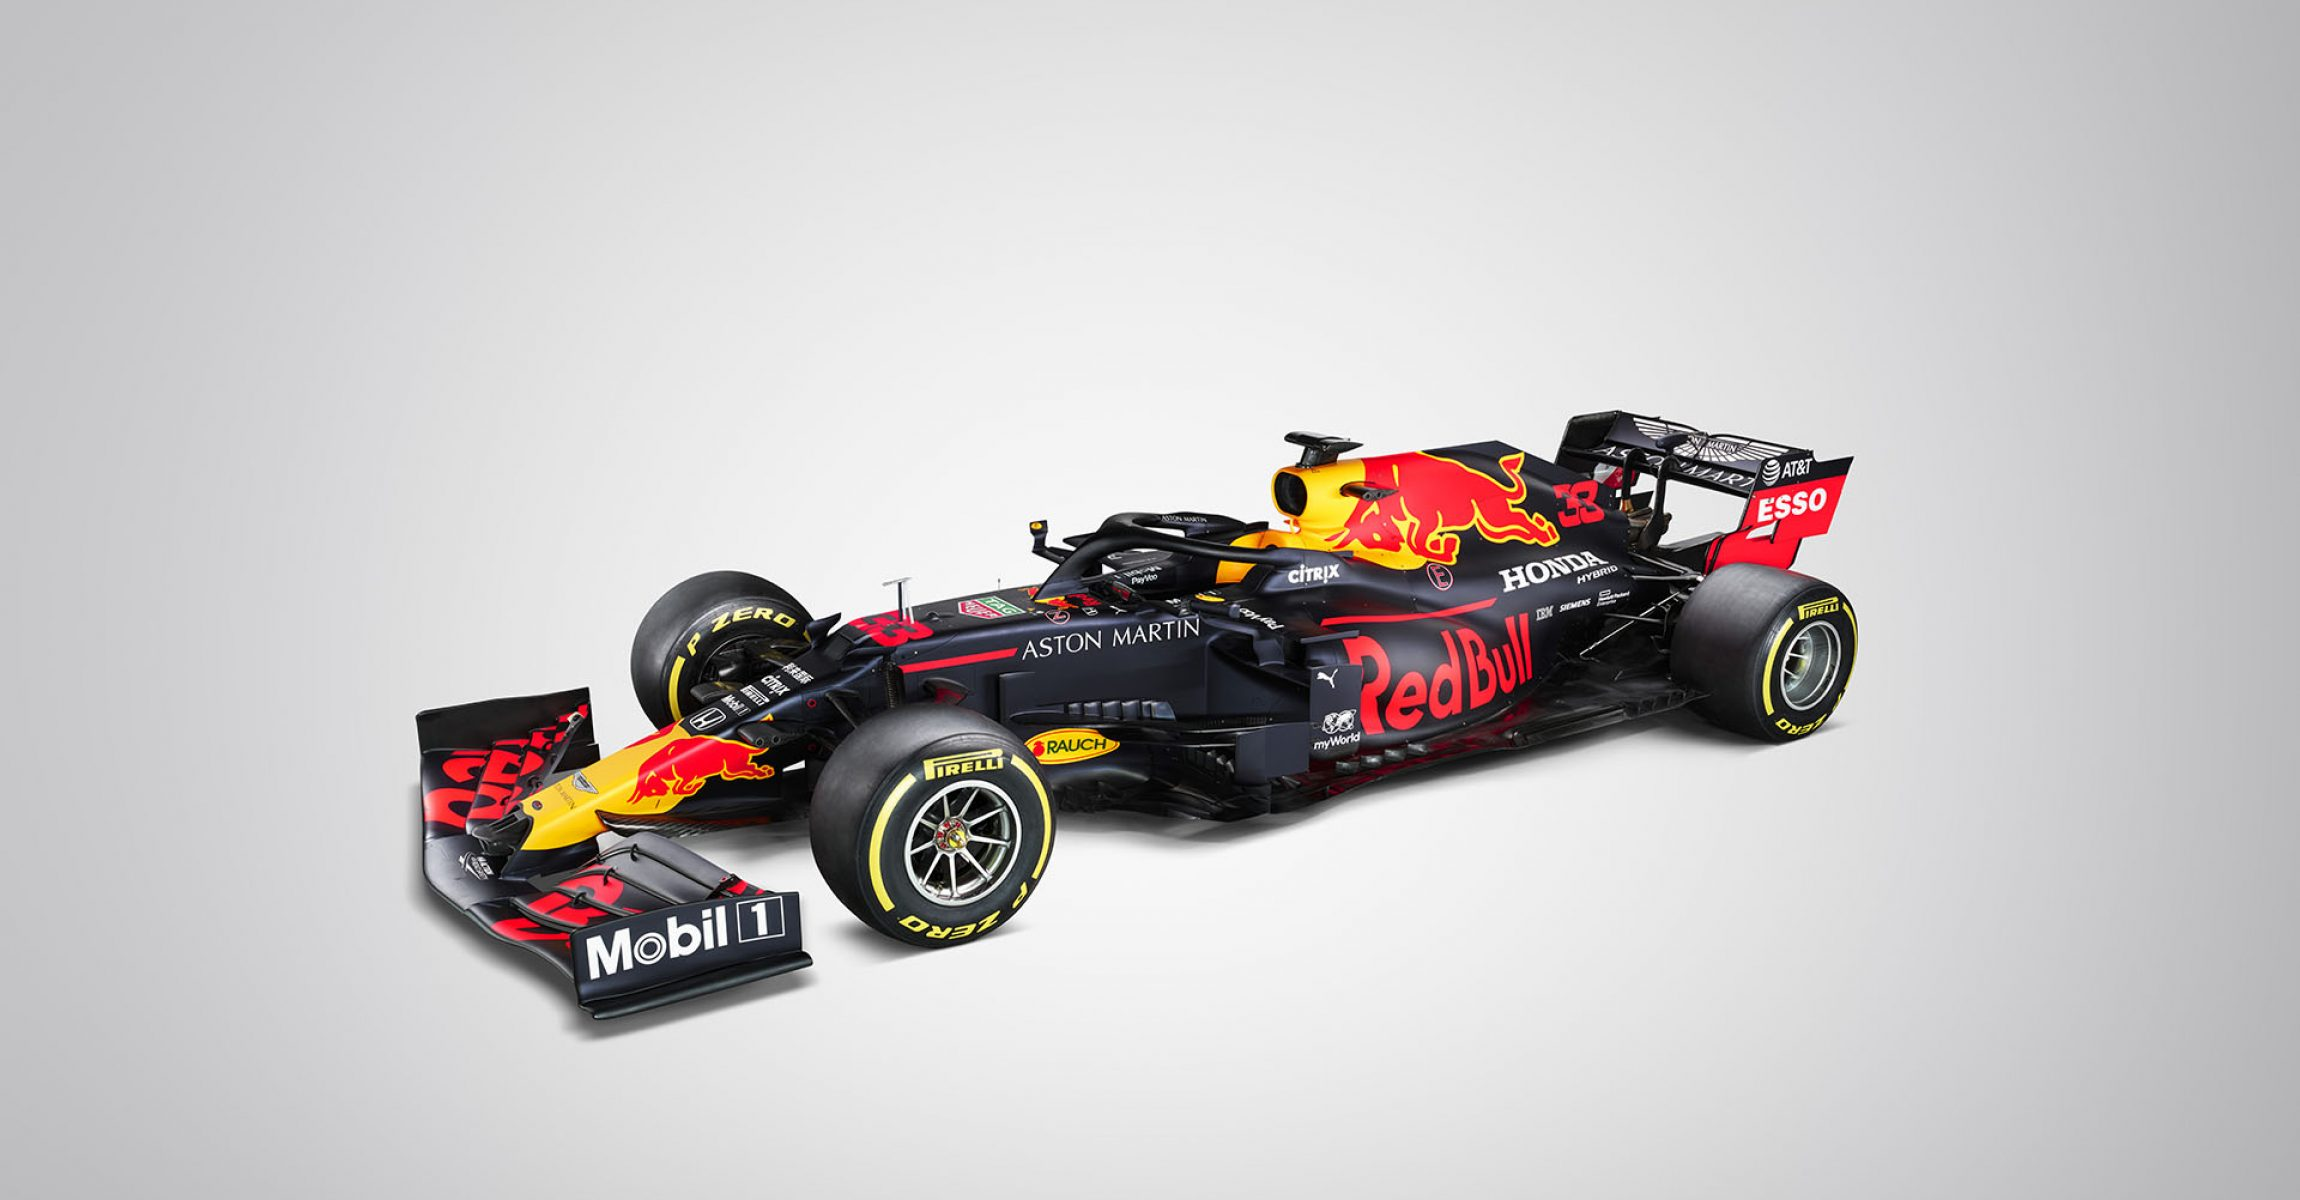 Max Verstappen's #33 Aston Martin Red Bull Racing RB15 seen during a Studio Shoot in United Kingdom on February 16, 2019. // Thomas Butler / Red Bull Content Pool // AP-1YJQP4K5H2111 // Usage for editorial use only //